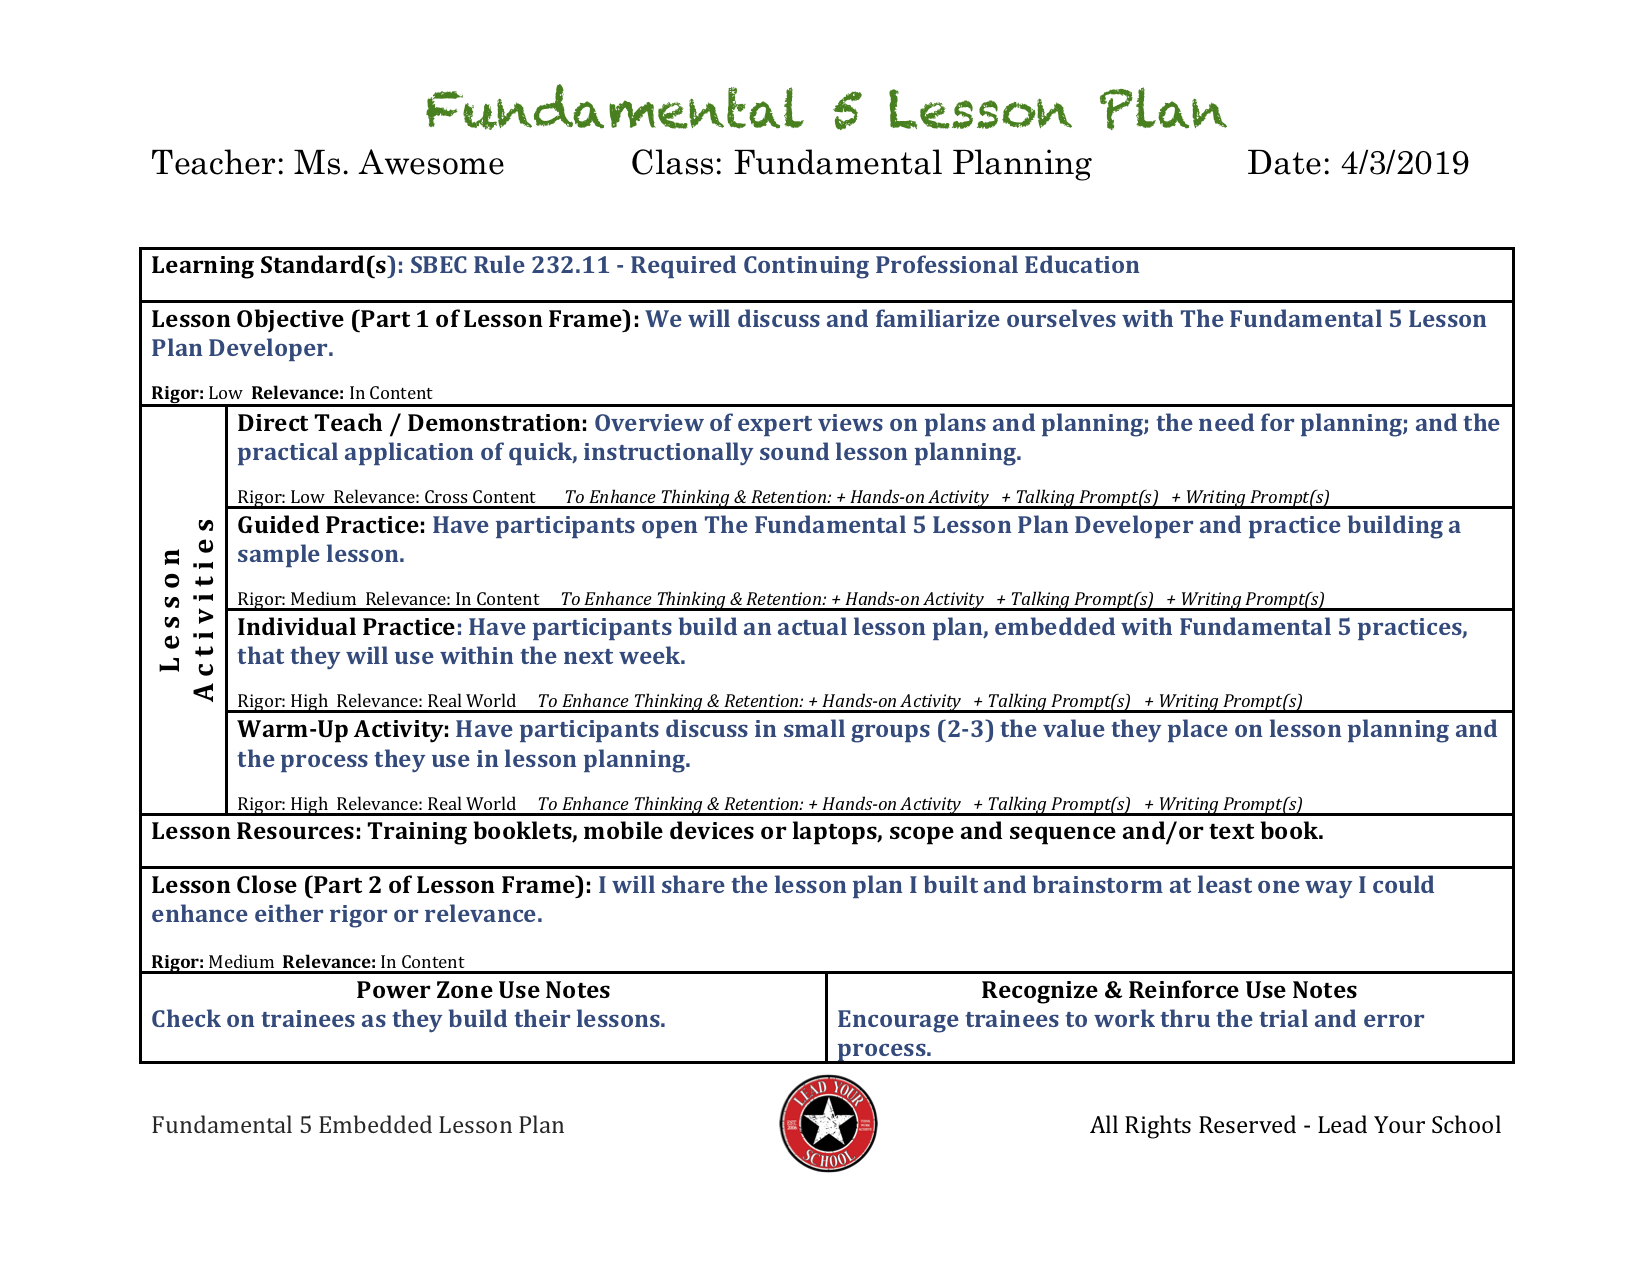 A Reader Asks    Fundamental 5 Resources - Lead Your School